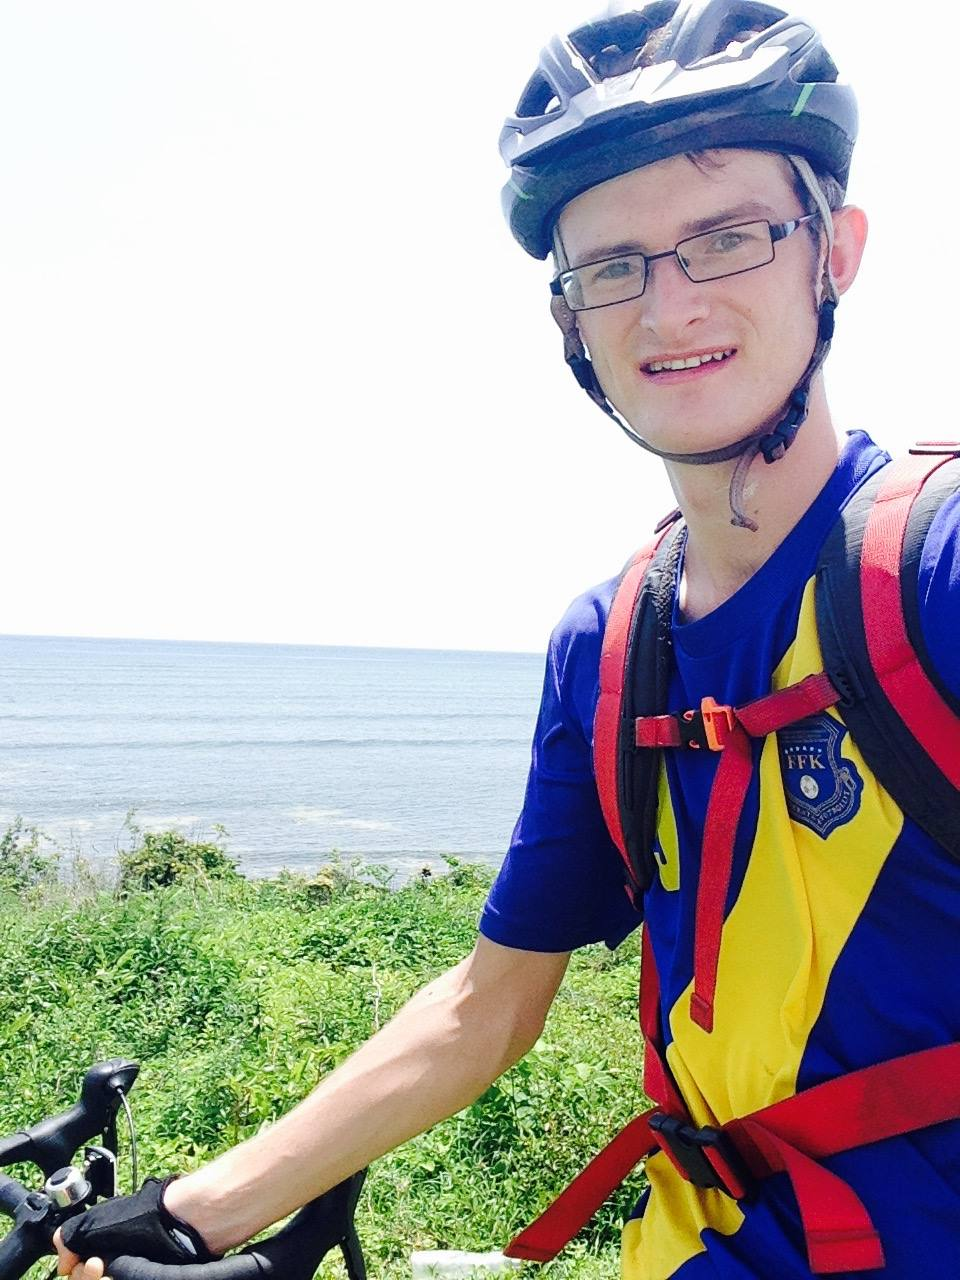 I undertook the first ever documented crossing of Cuba by bicycle, to inspire other people struggling with dyspraxia. I believe that maximising the potential of a society requires unlocking the personal potential of each of us.